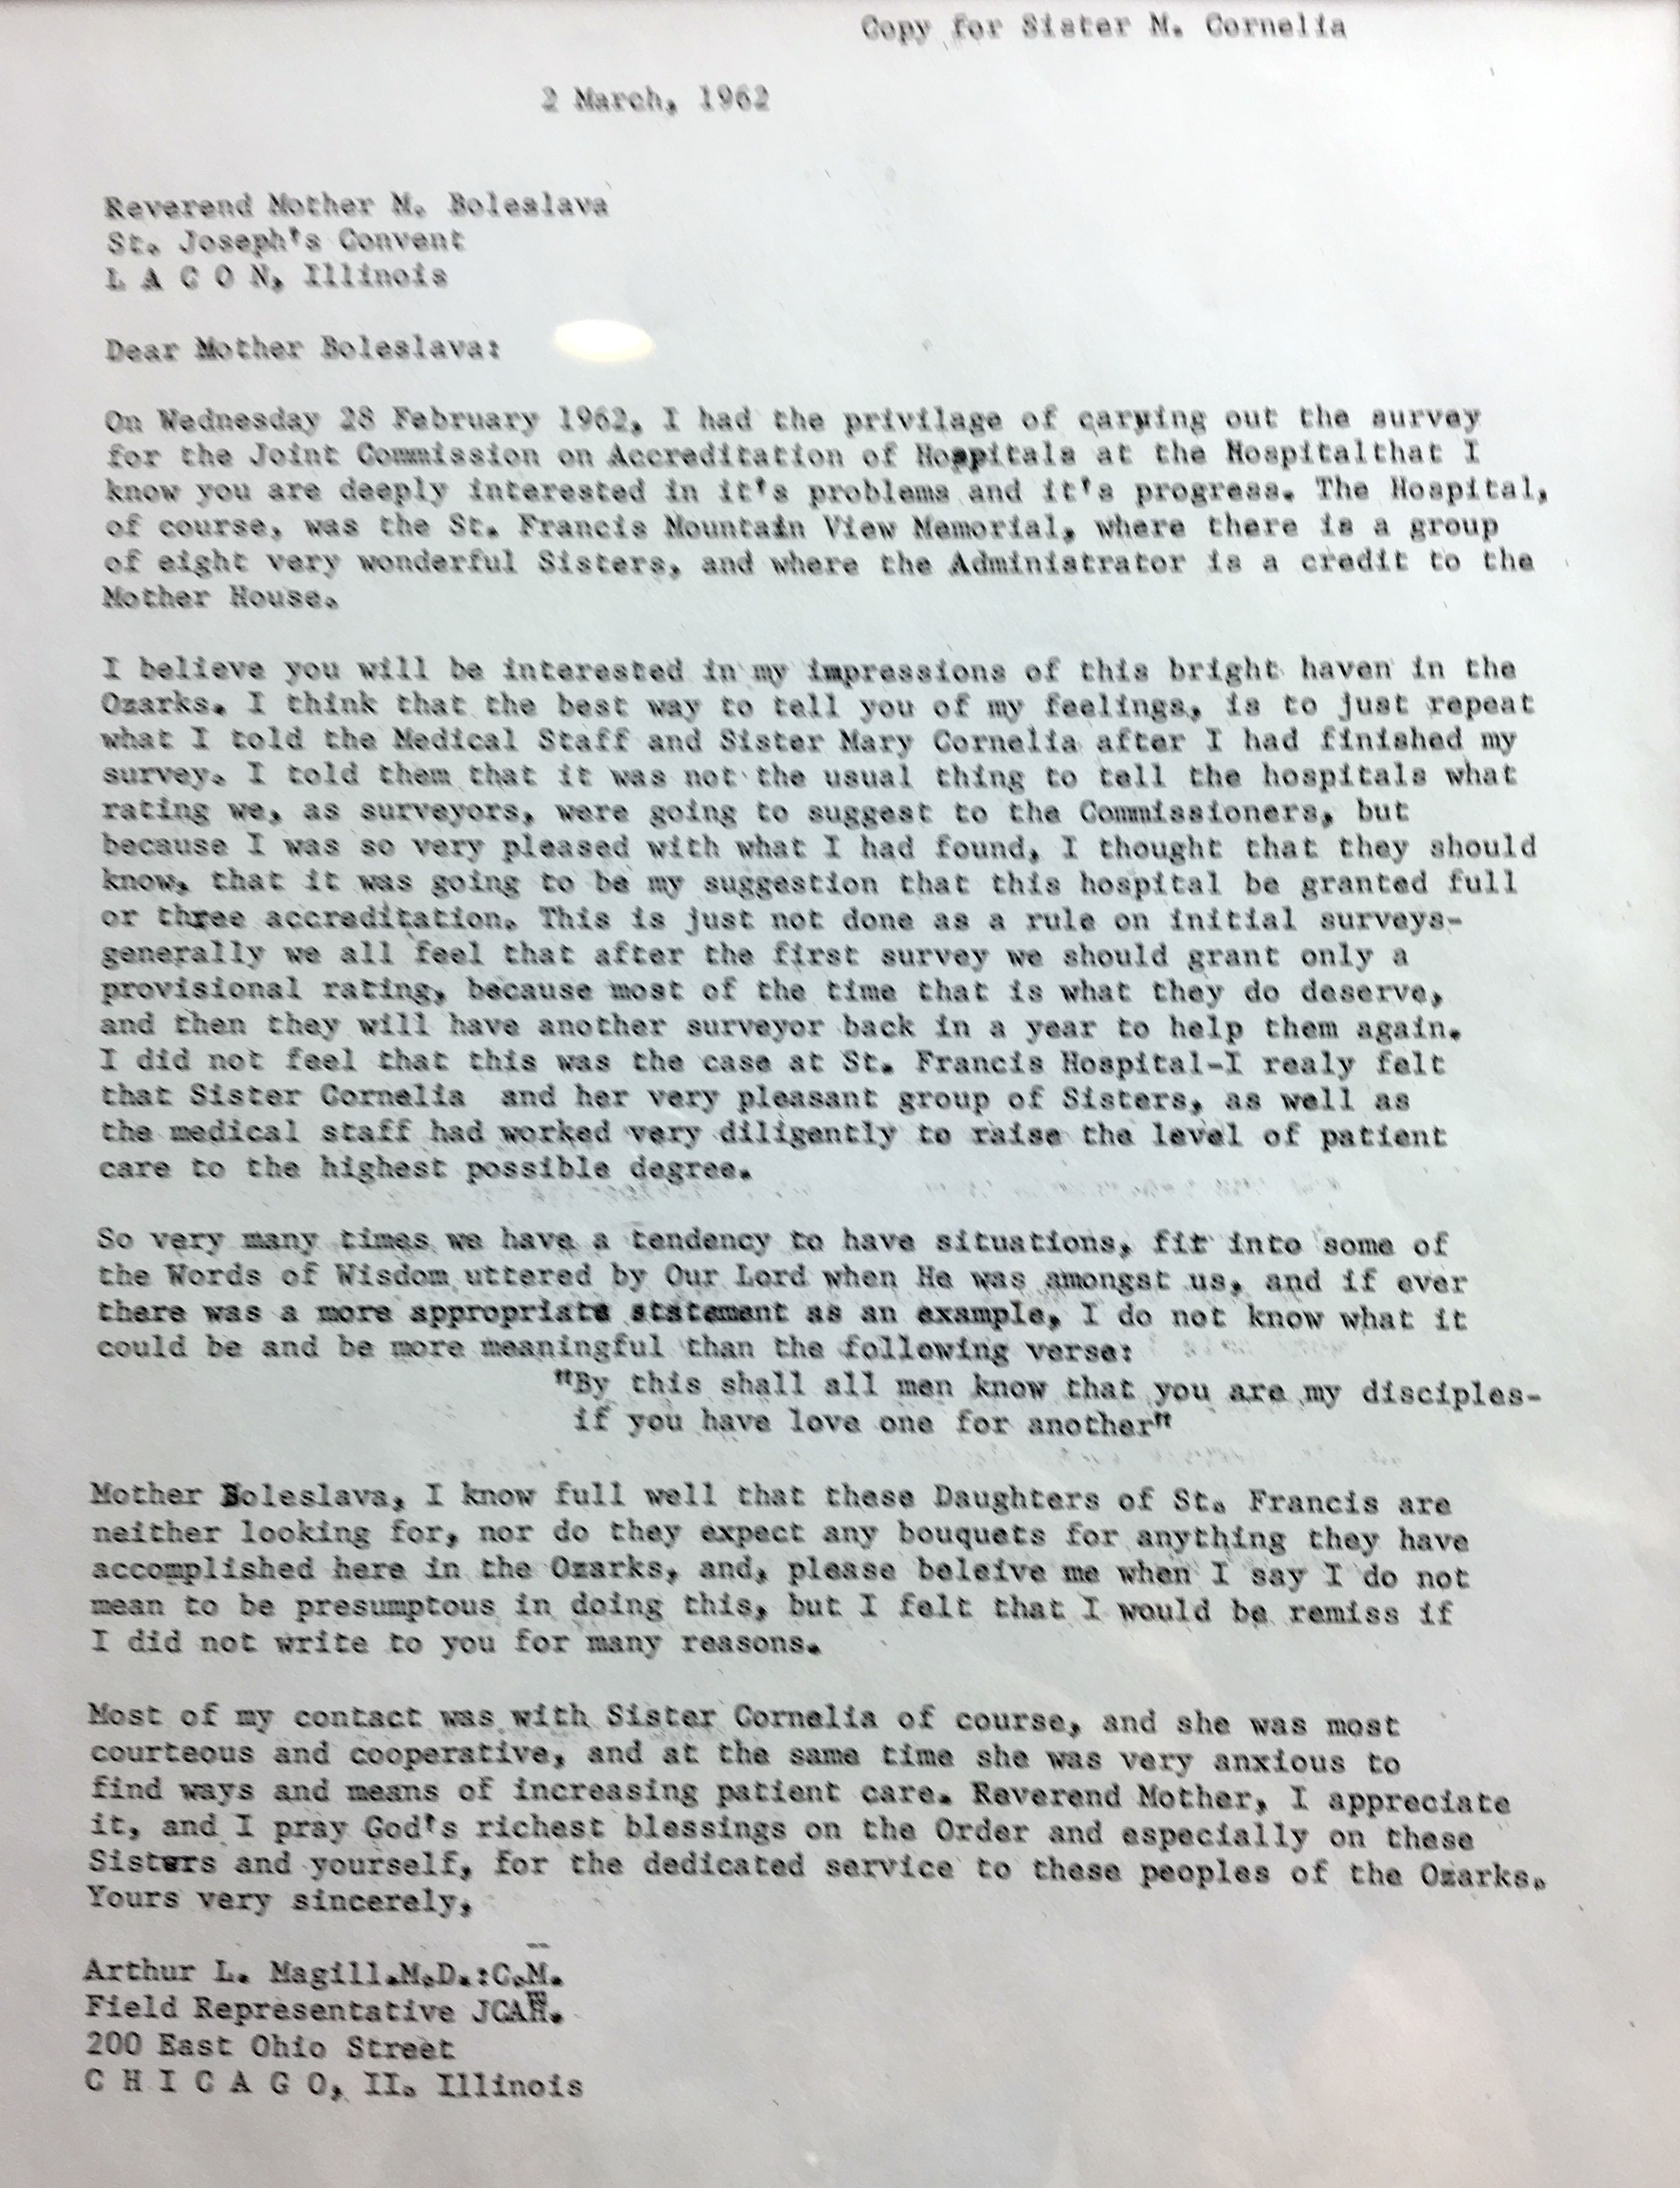 The original letter from Arthur L. Magill in March 1962.